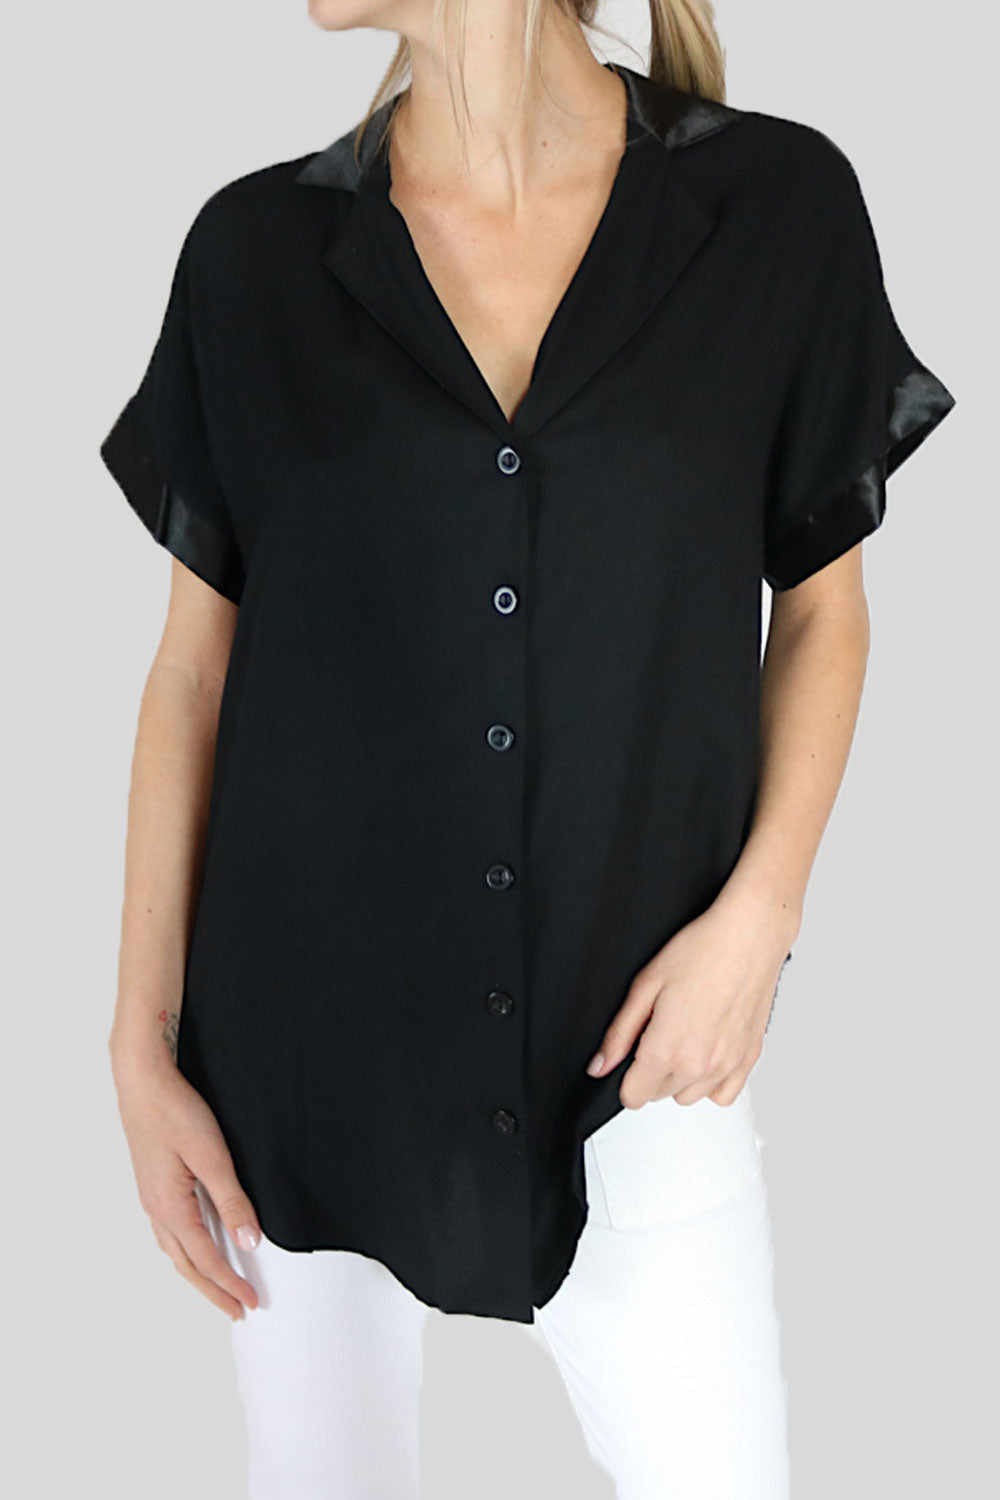 Black Button up Silk Sleeves